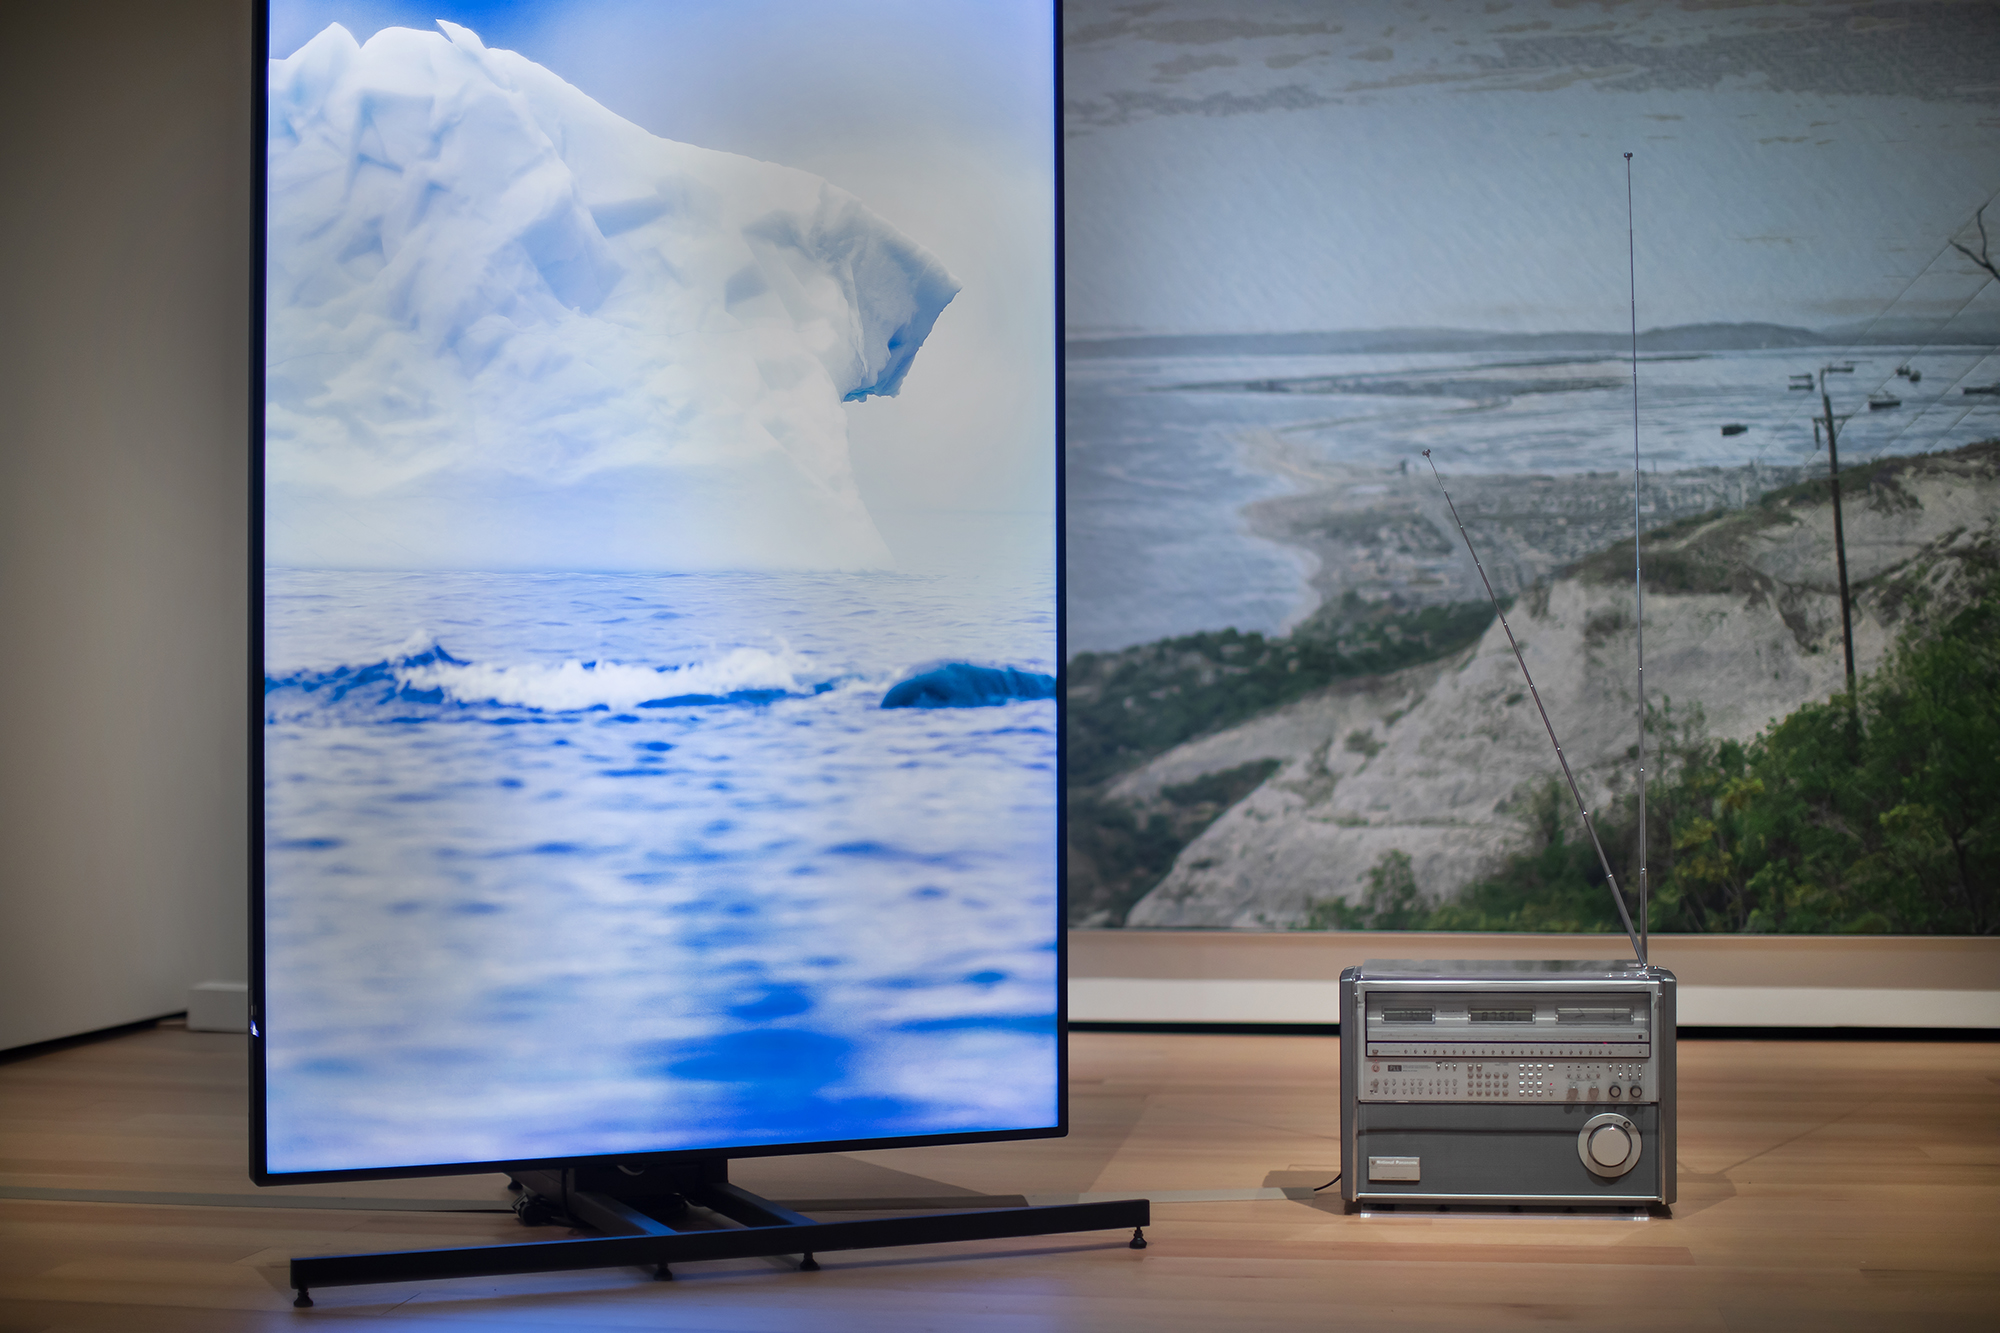 screen showing icebergs and a radio